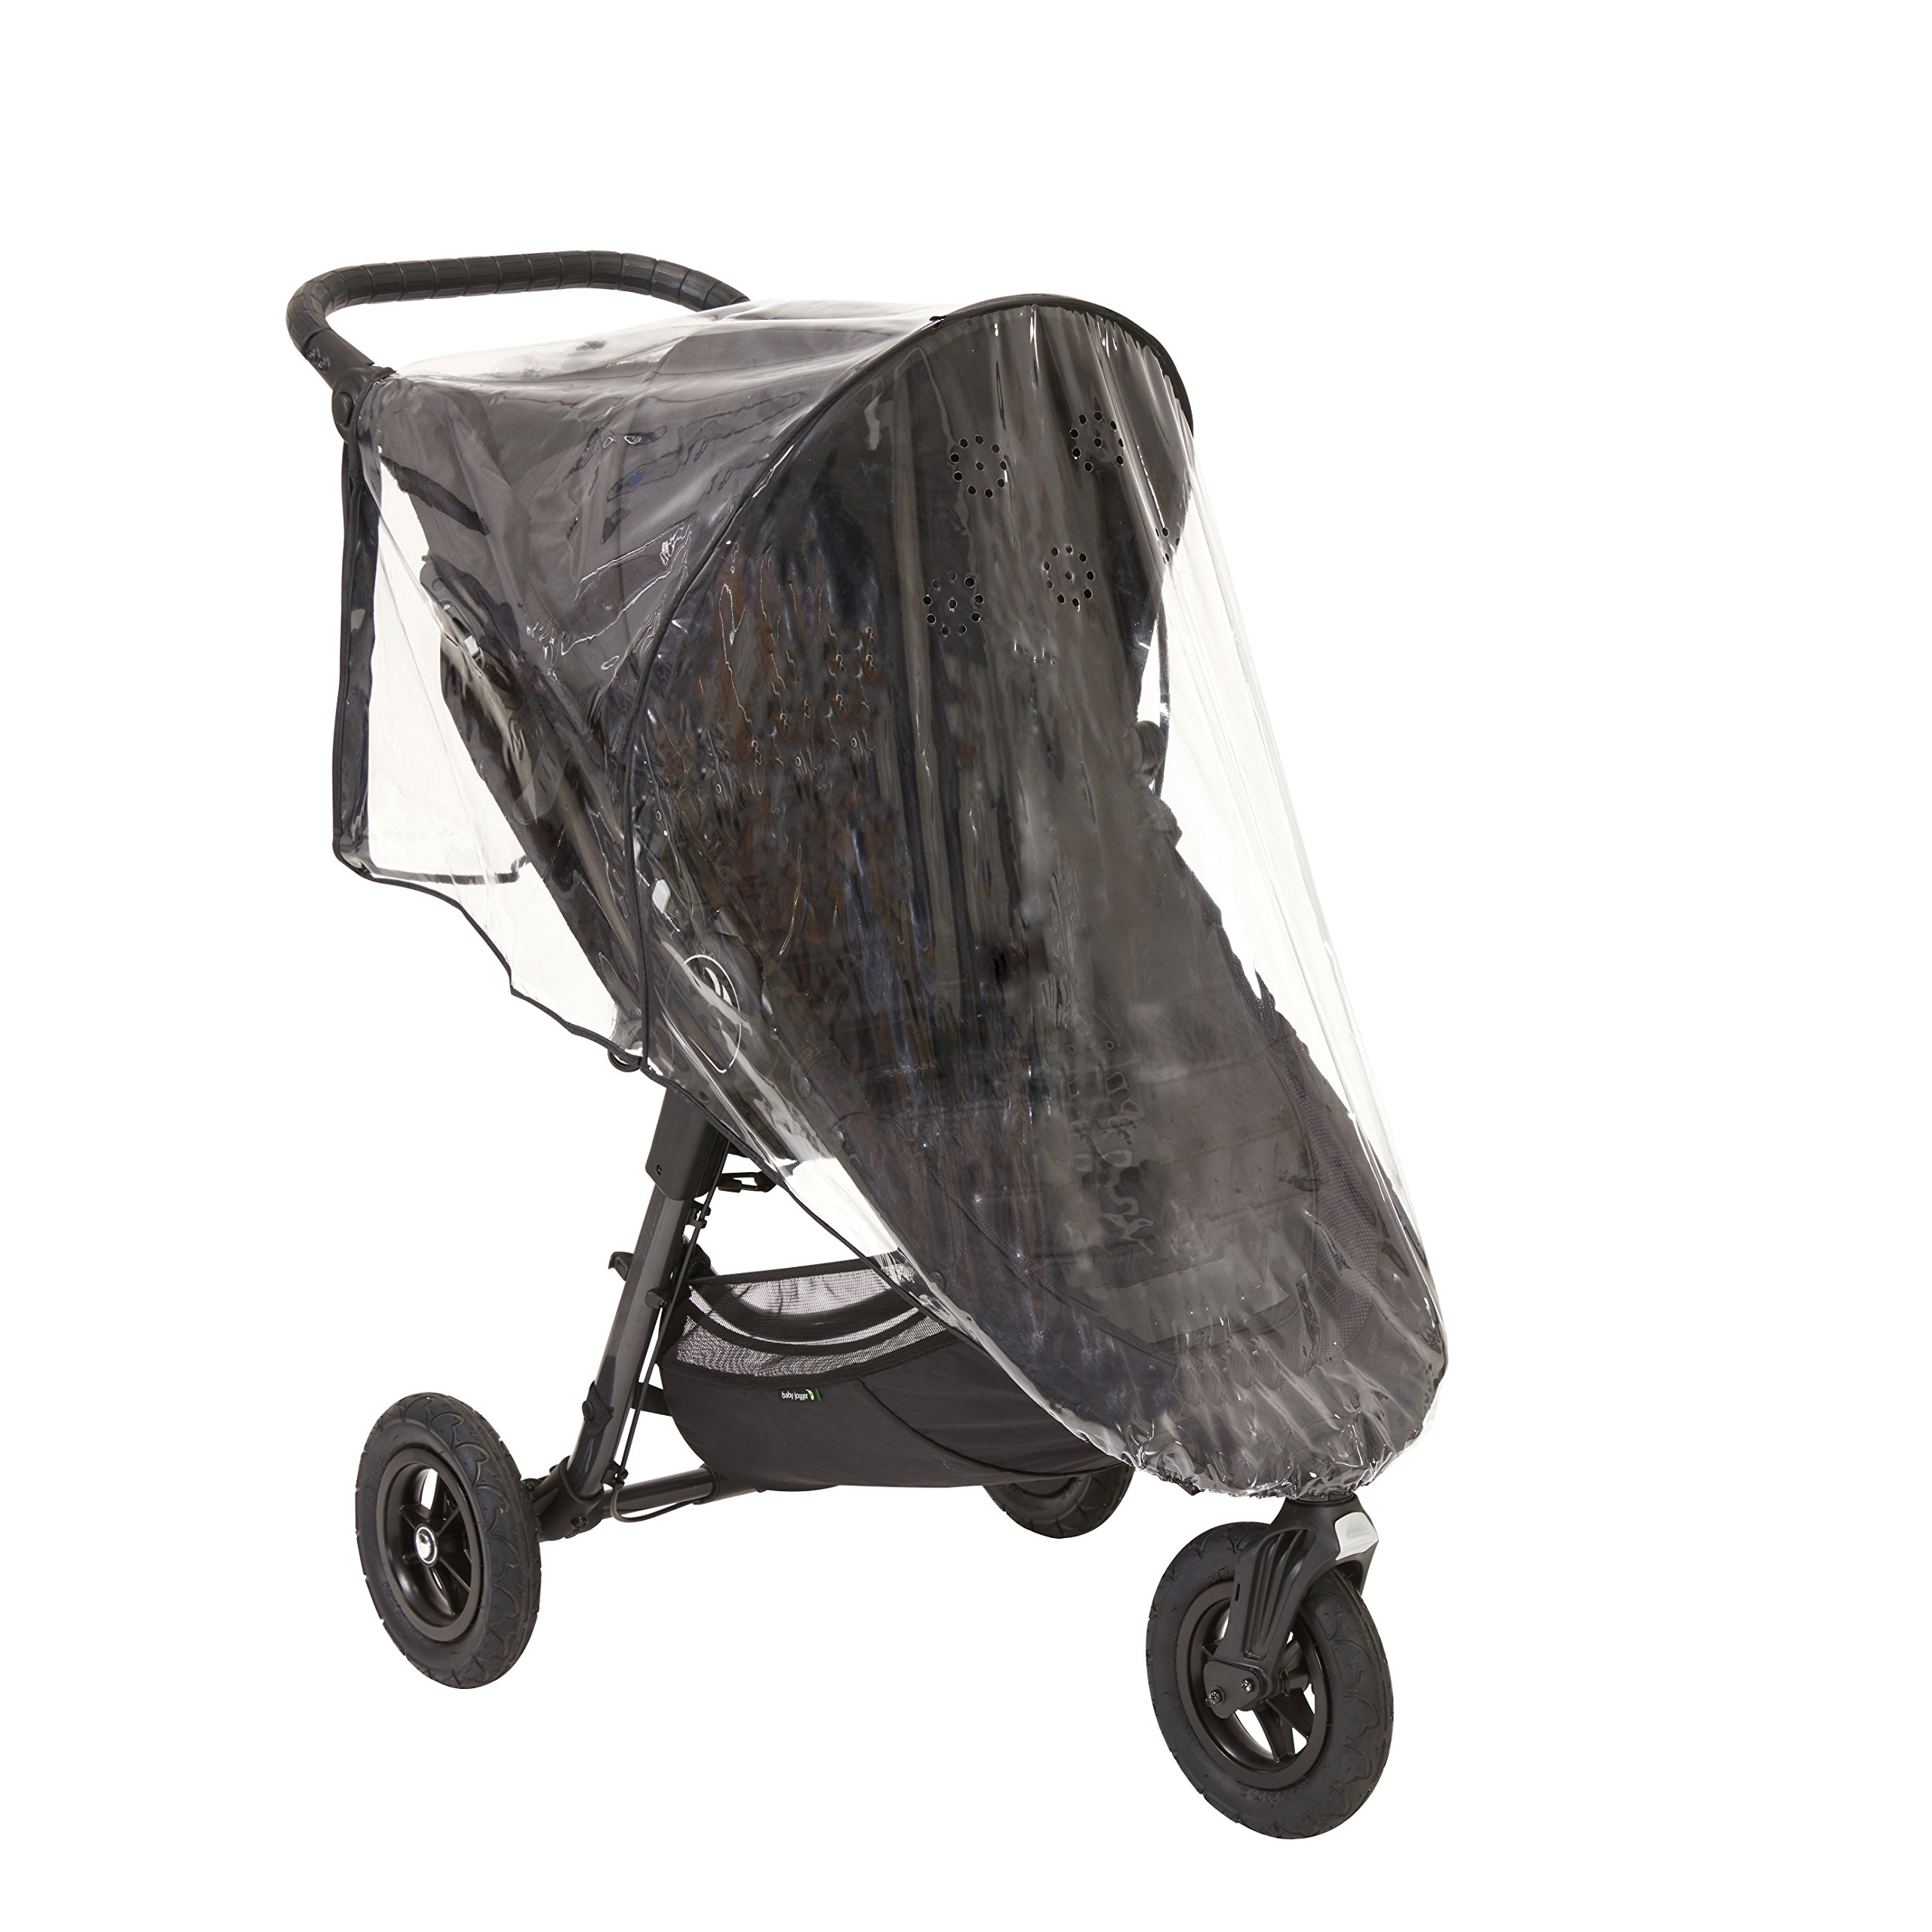 Amazon.com : Sashas Sun, Wind and Insect Cover for Baby Jogger City ...